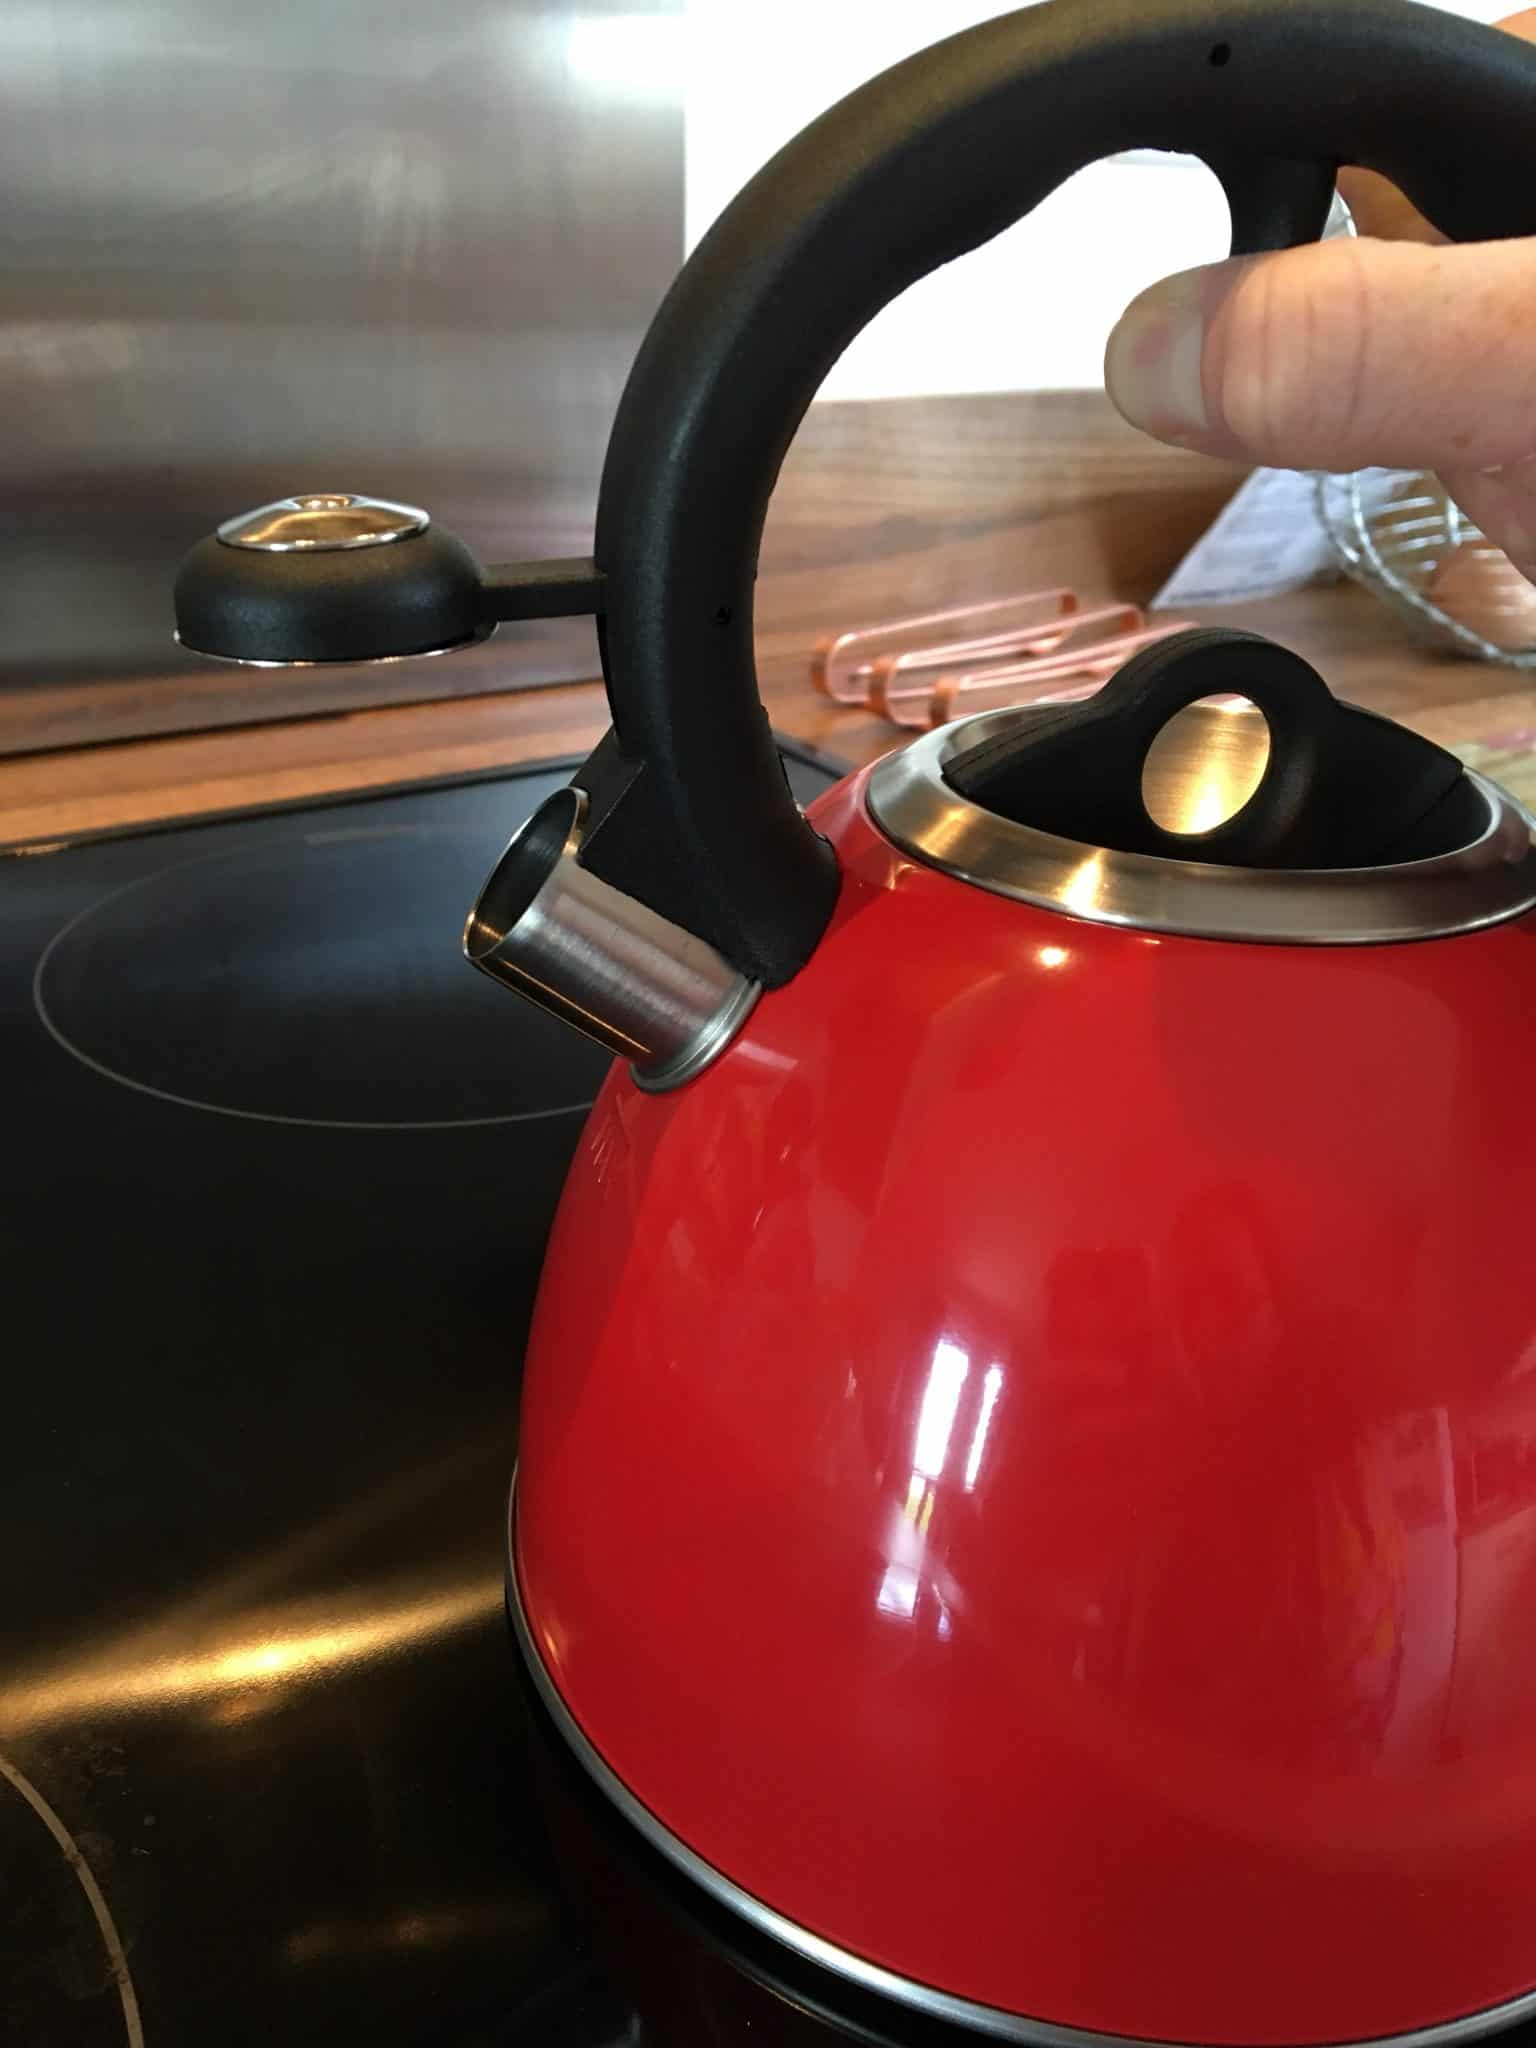 Spout on a whistling tea kettle